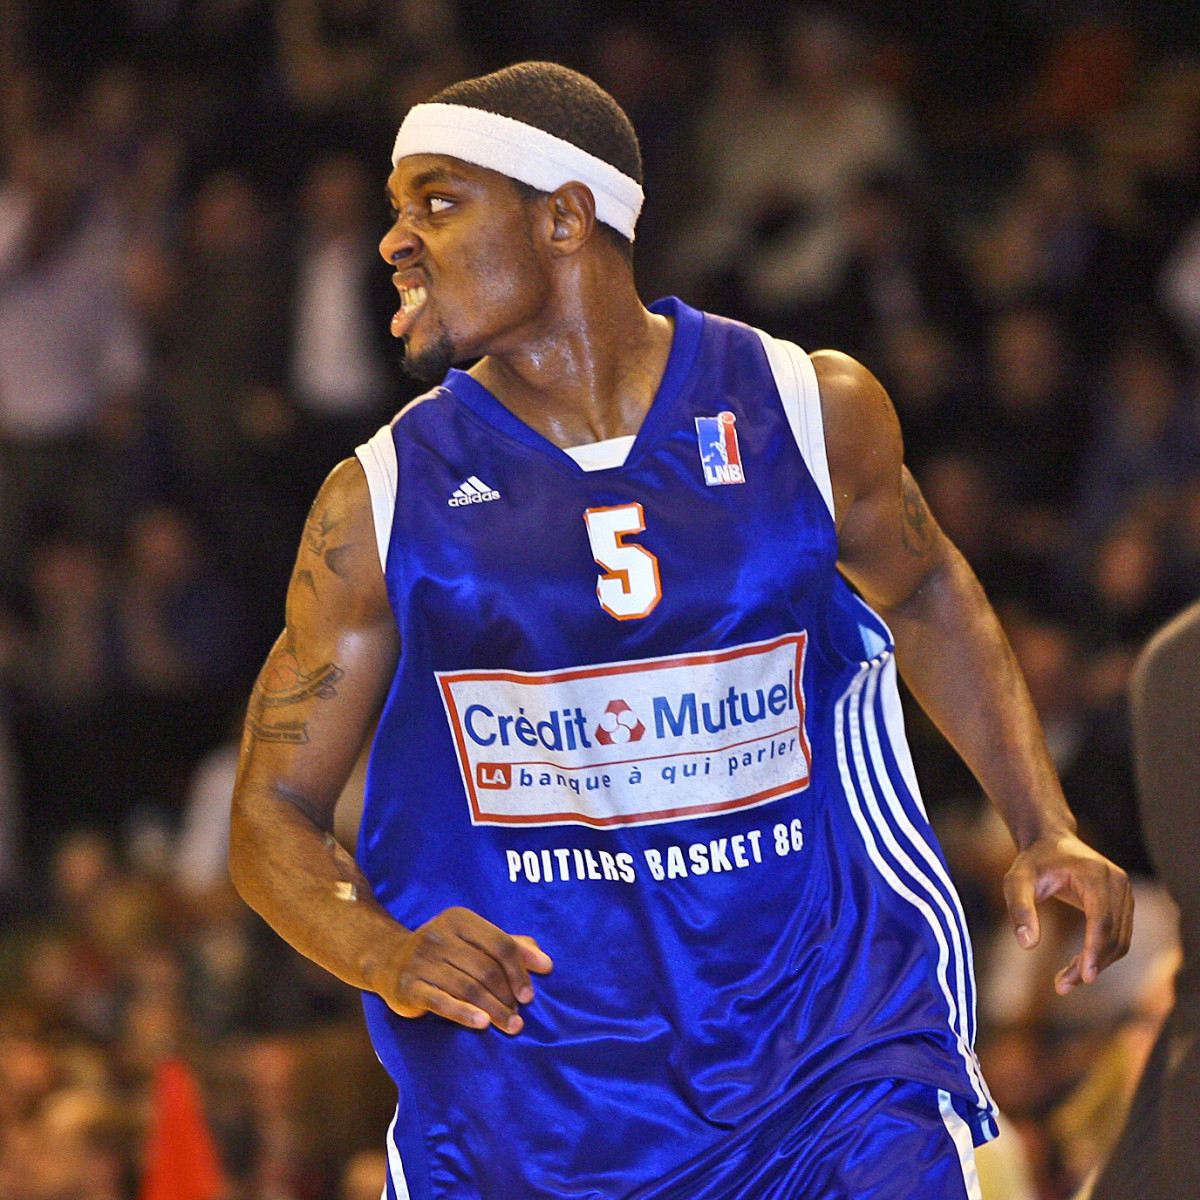 Photo of Rasheed Wright, 2008-2009 season